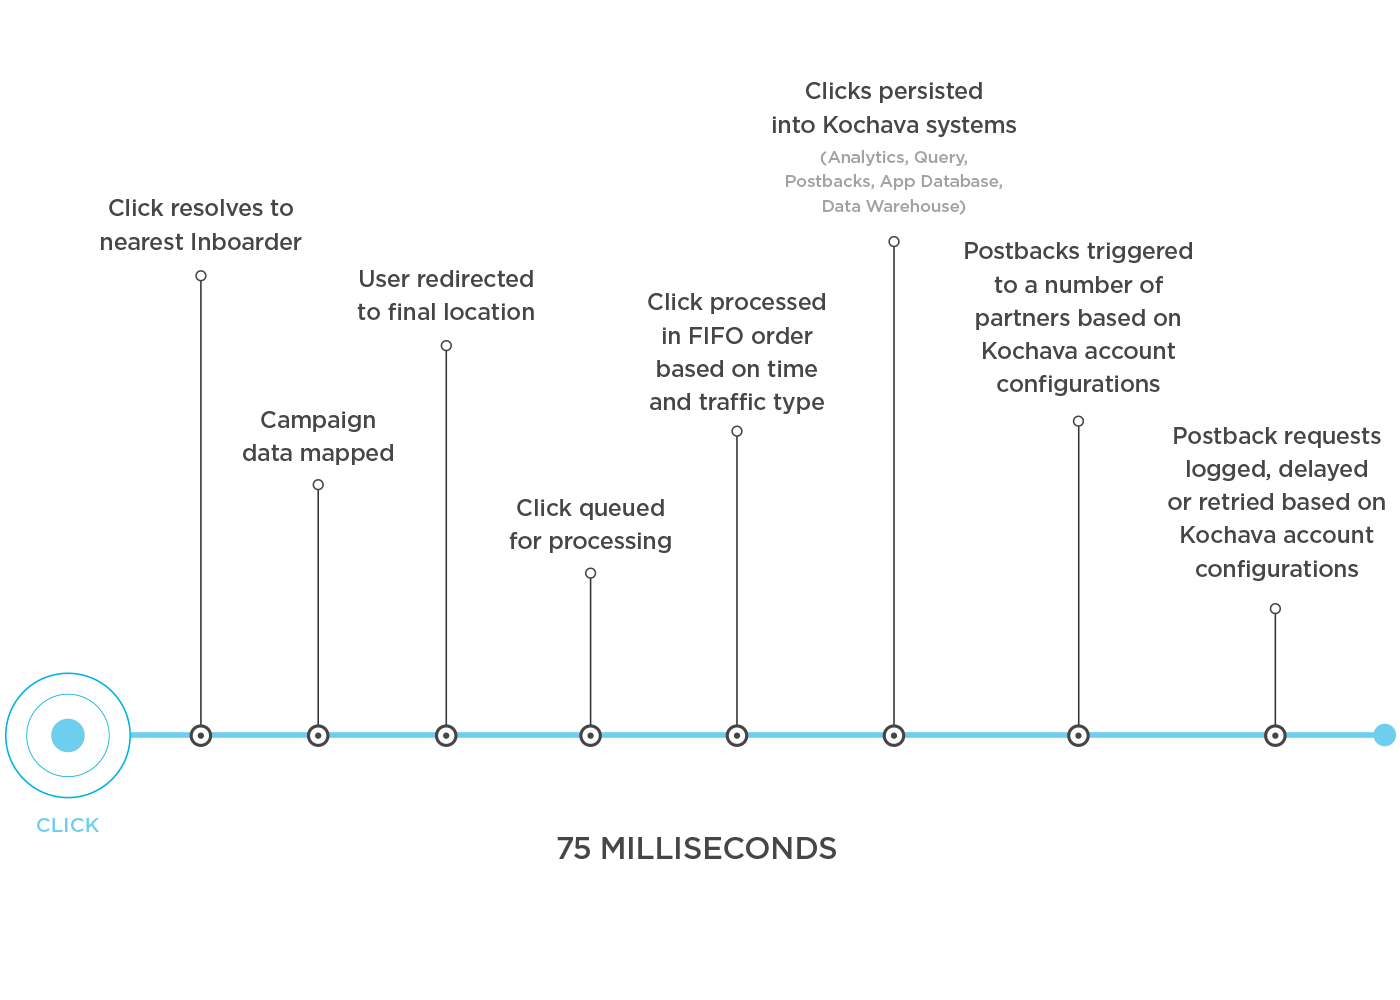 Image of a timeline of how a click is recorded